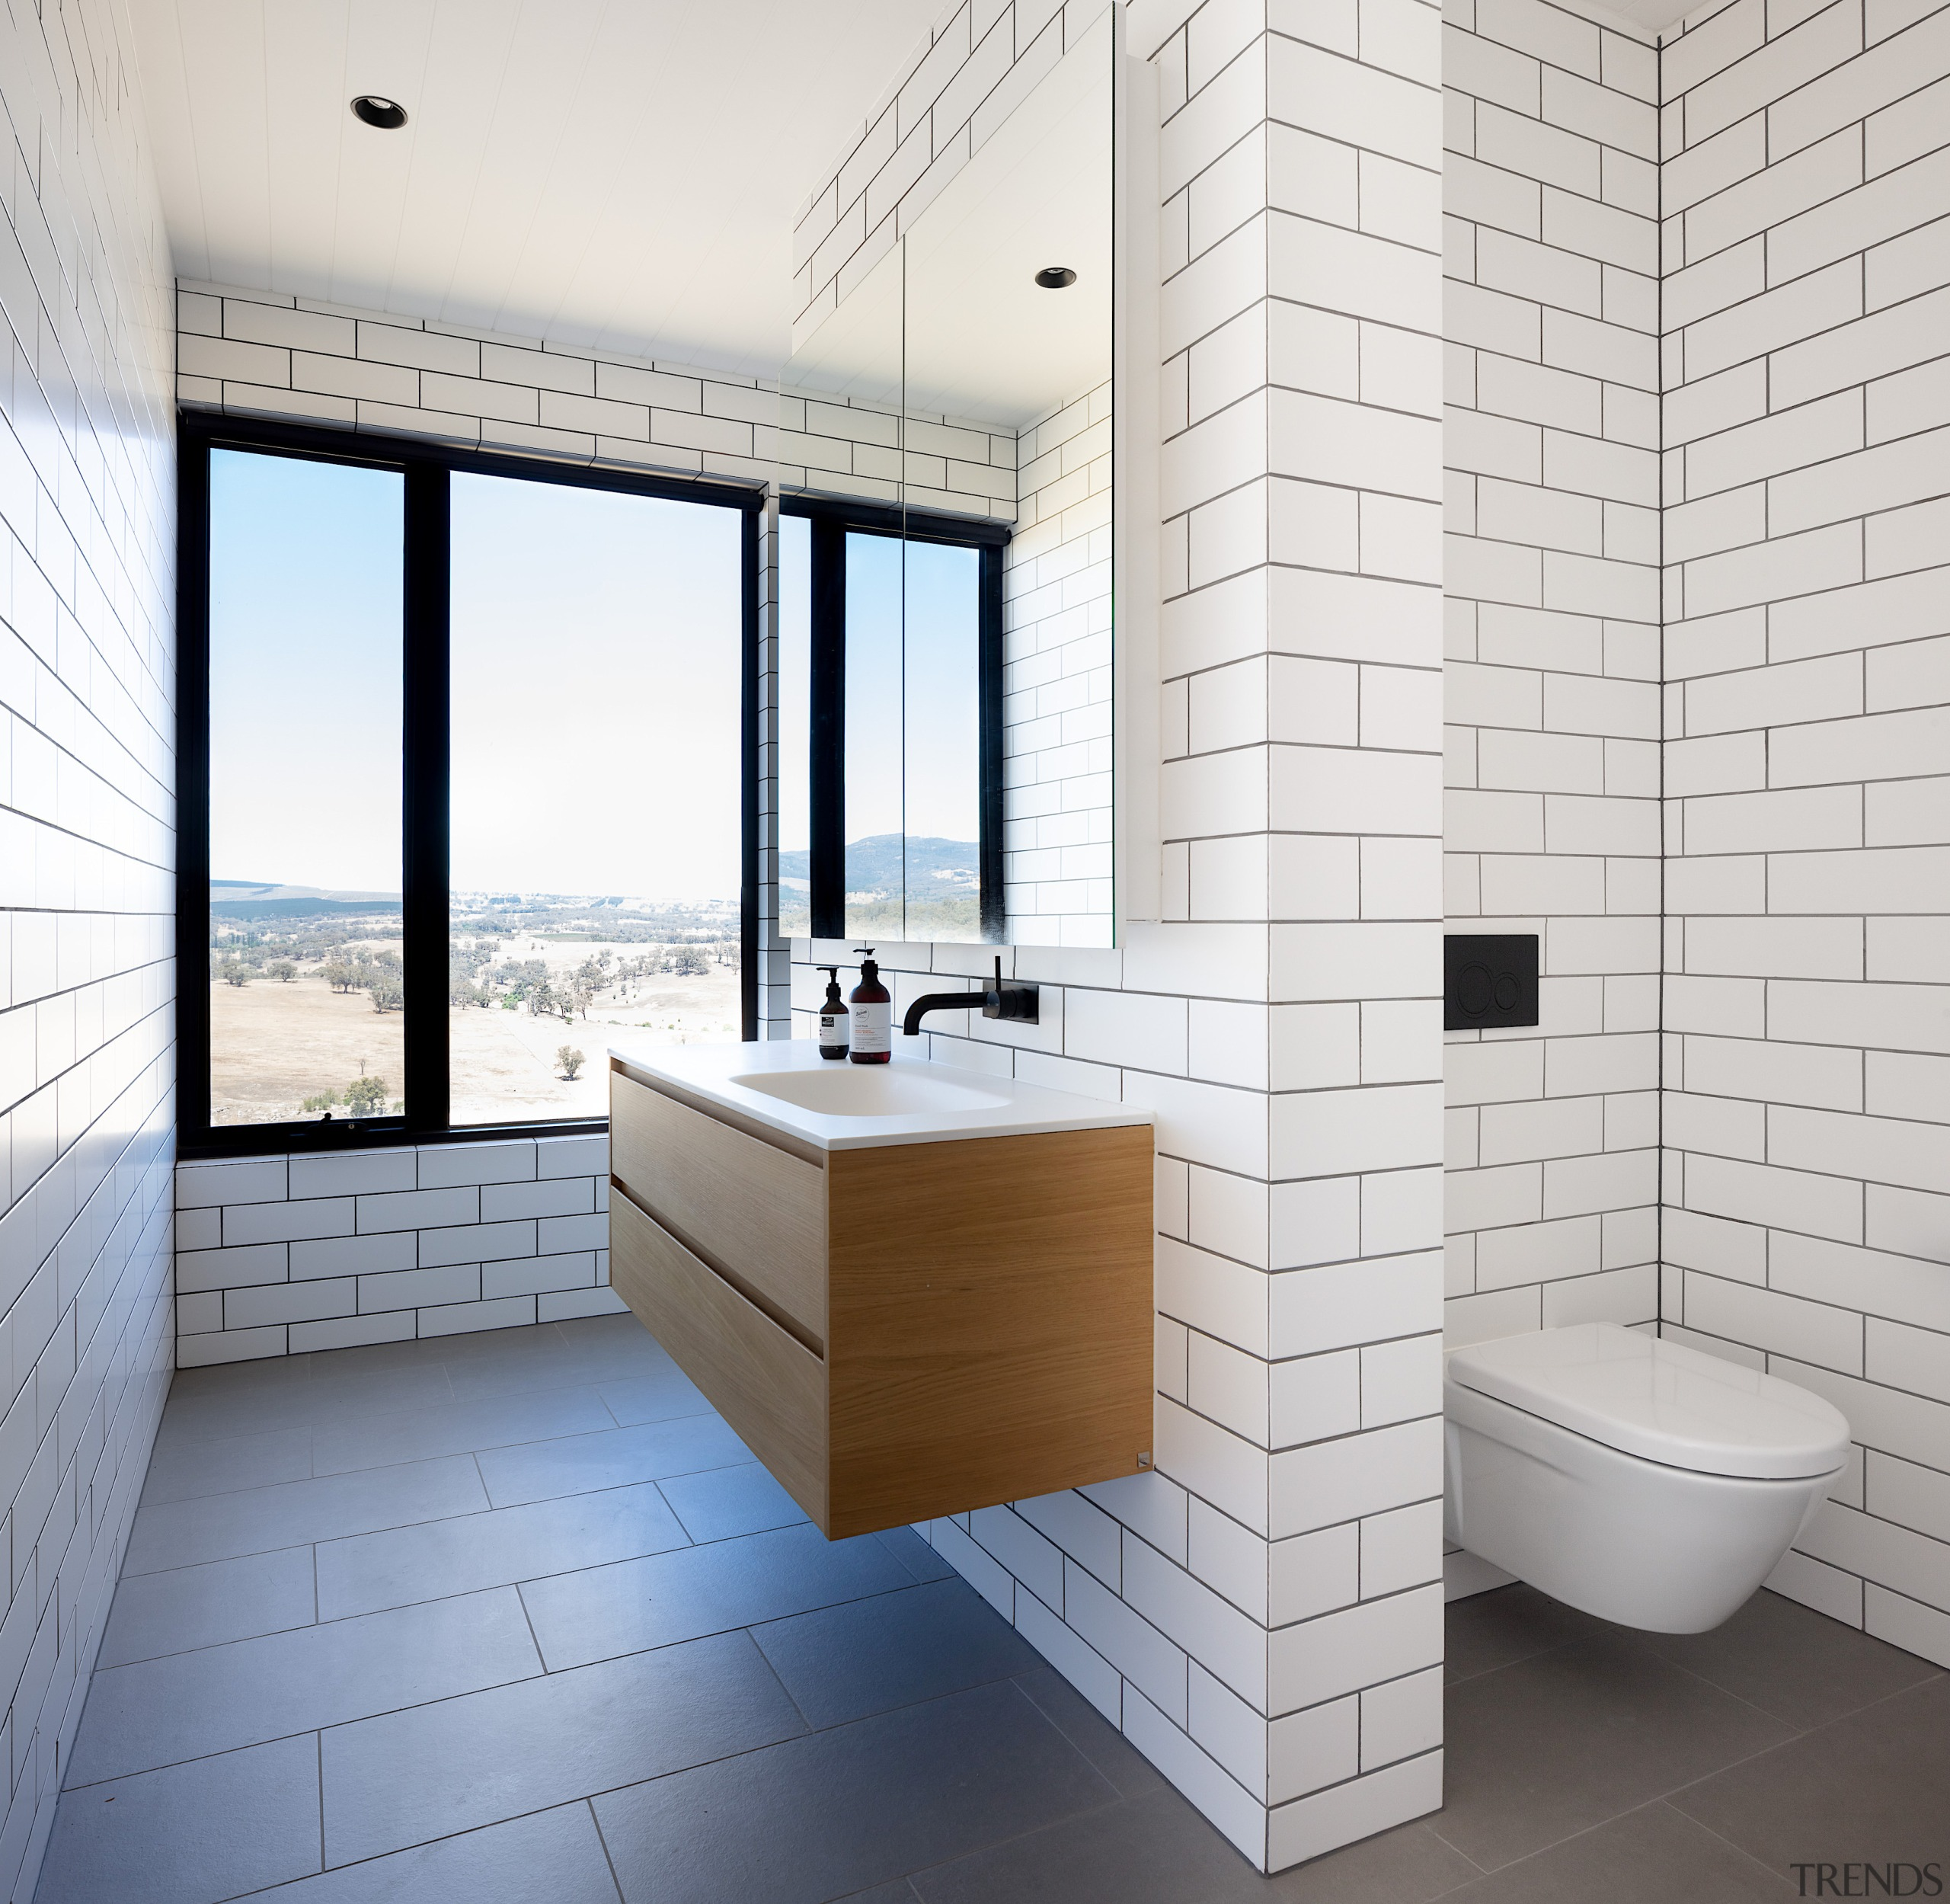 5 Design Tips for an Ergonomic Bathroom –